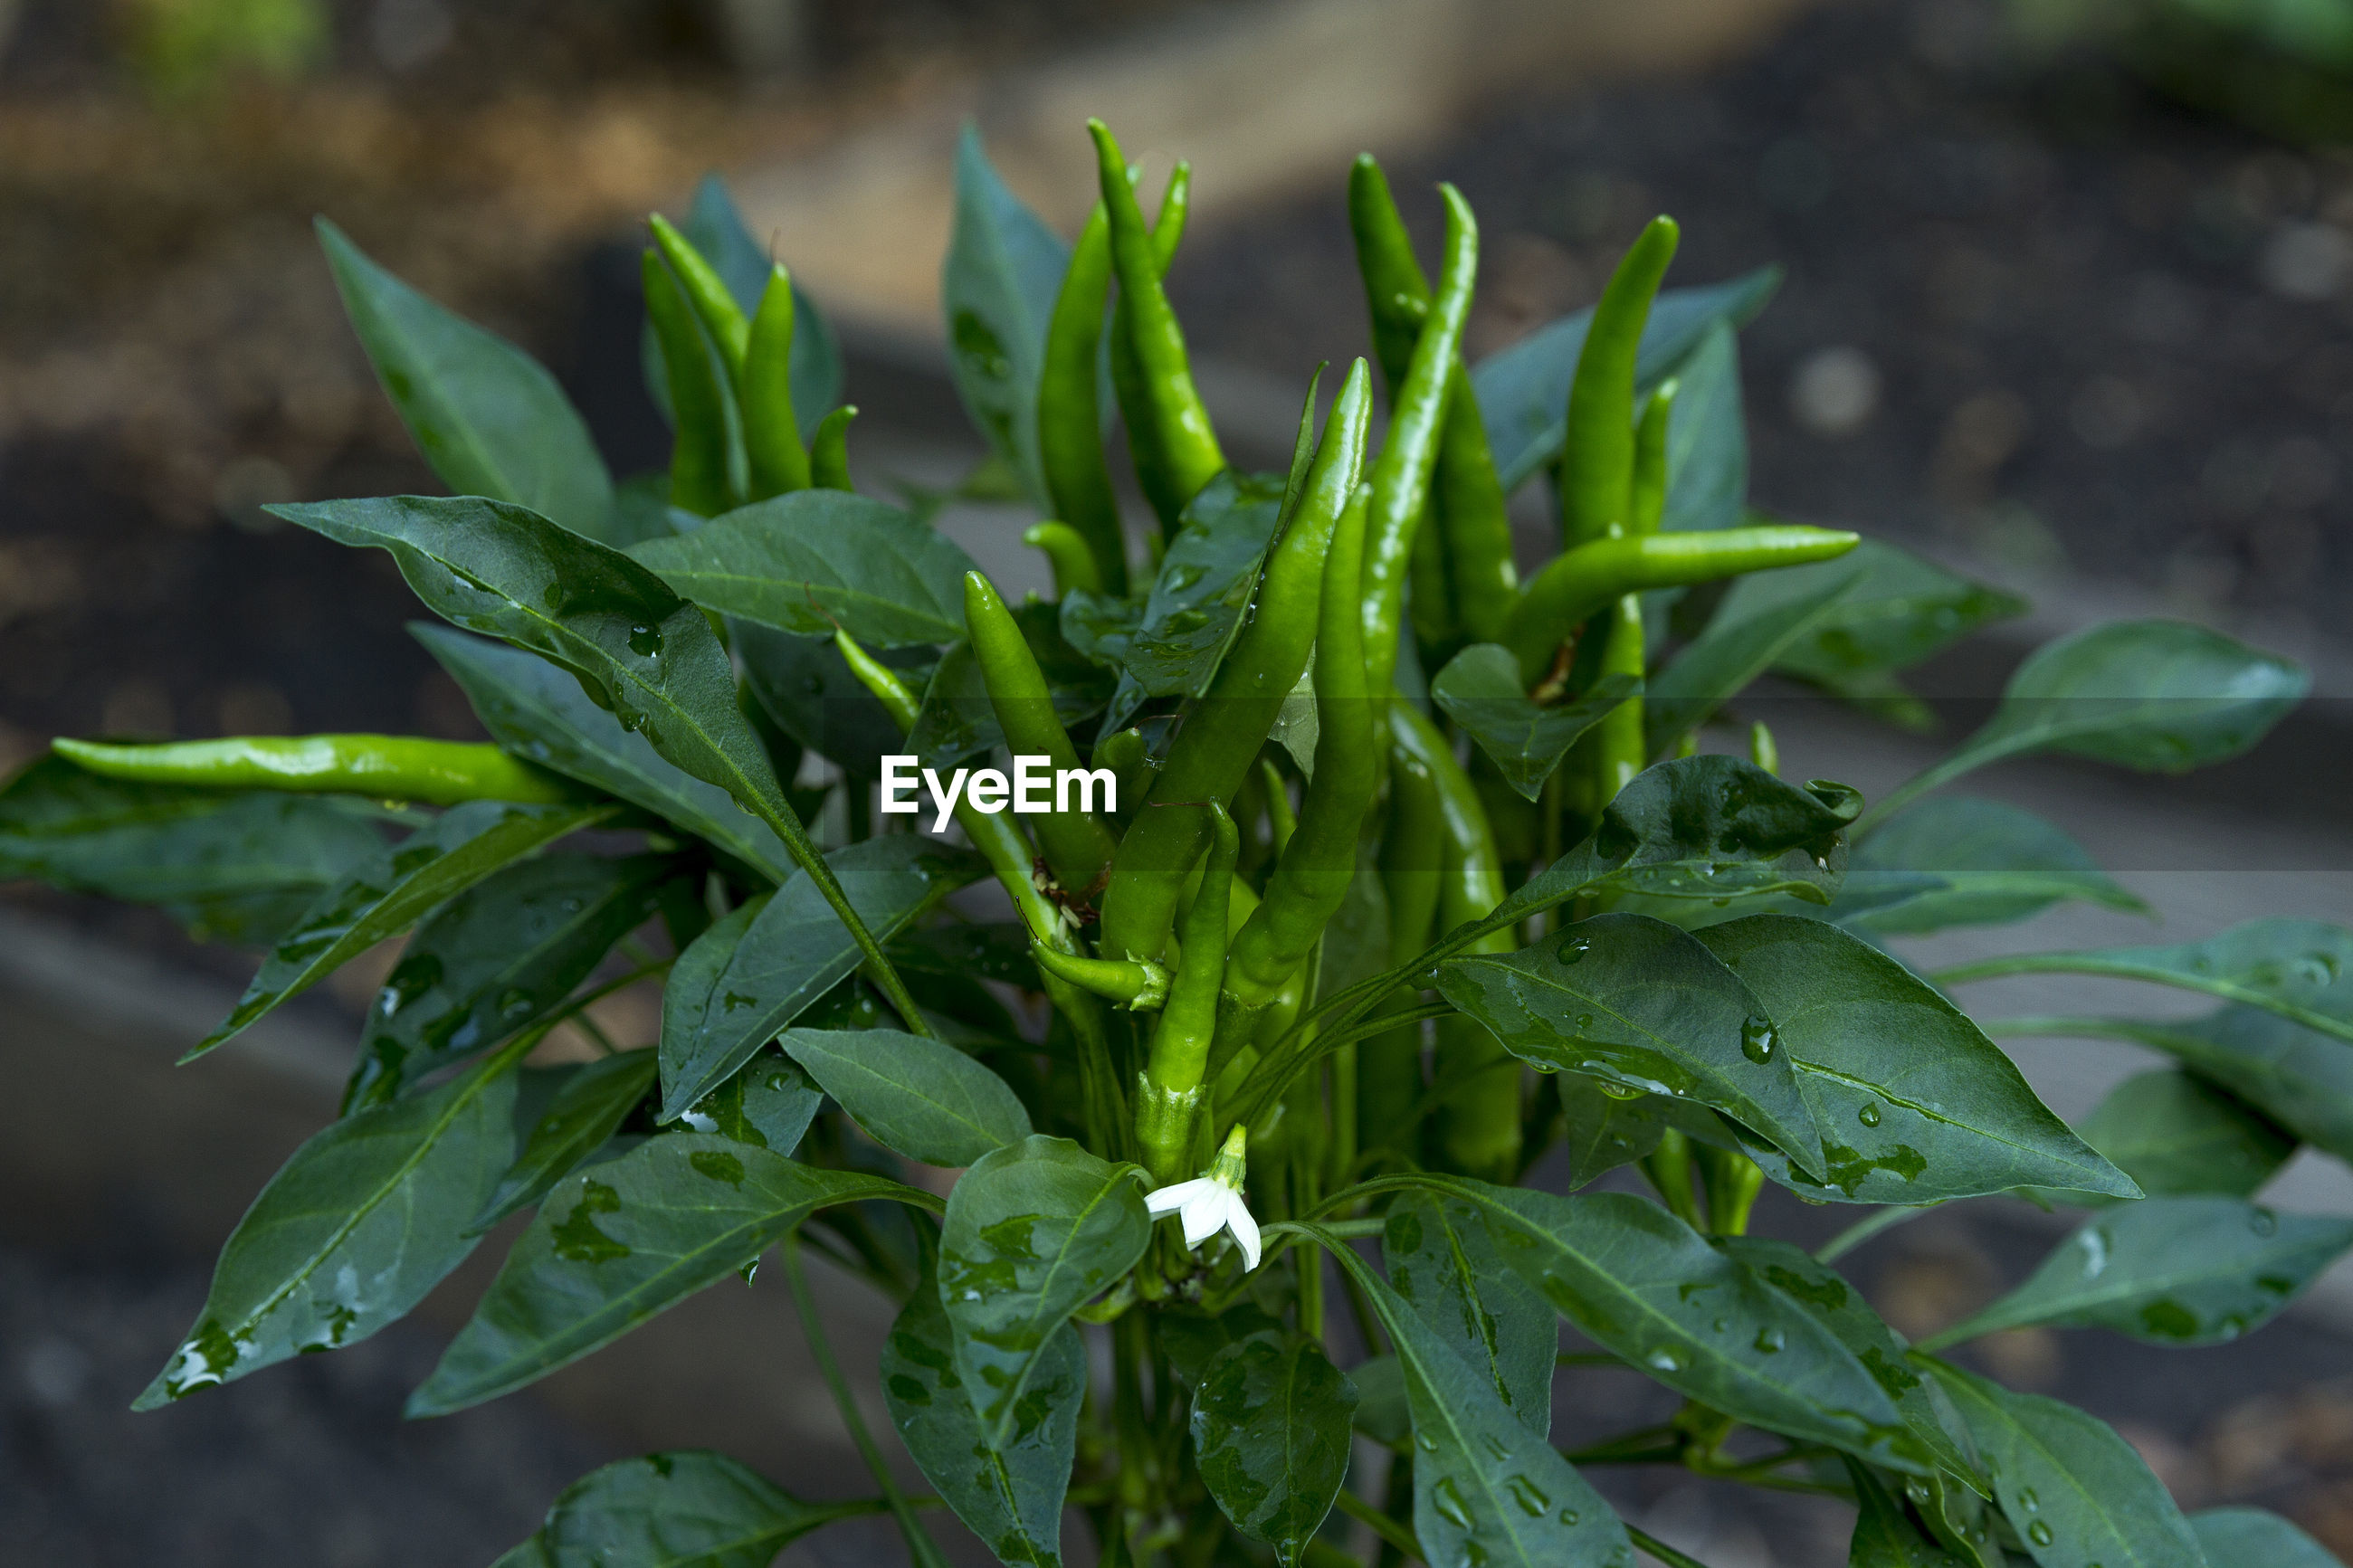 Close-up of fresh chilies on plant